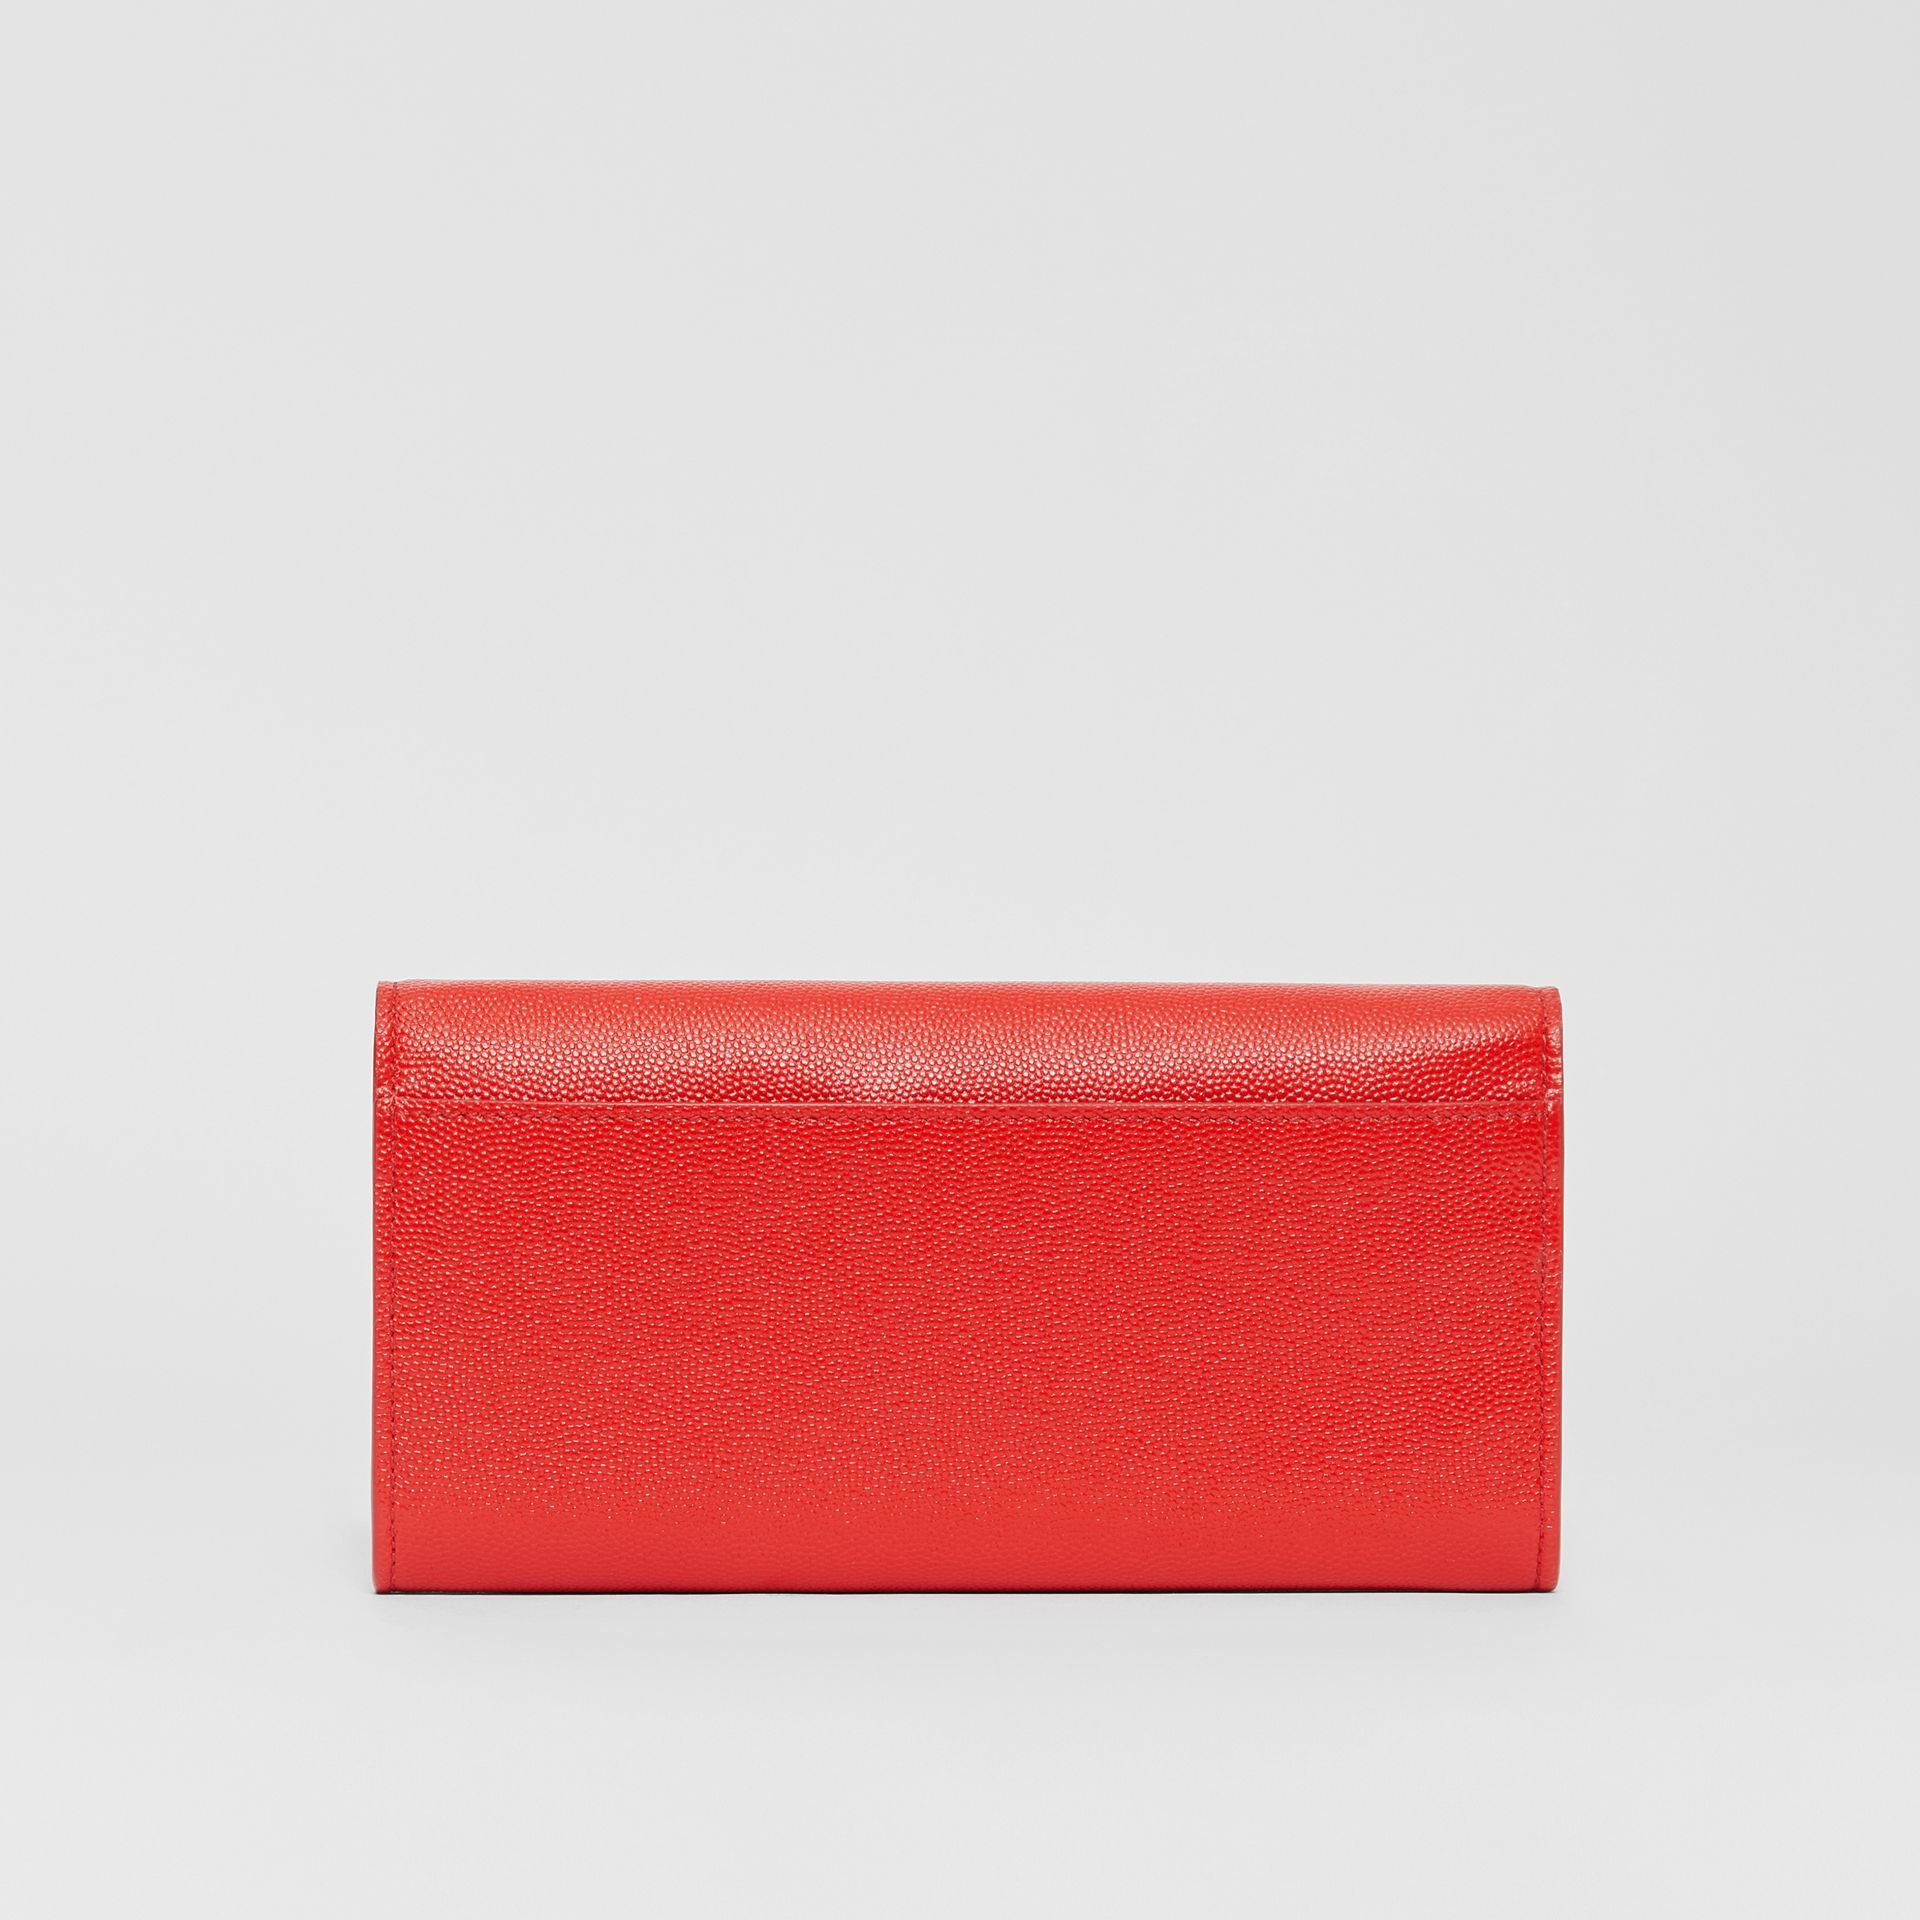 Monogram Motif Grainy Leather Continental Wallet in Bright Red - Women | Burberry - gallery image 5